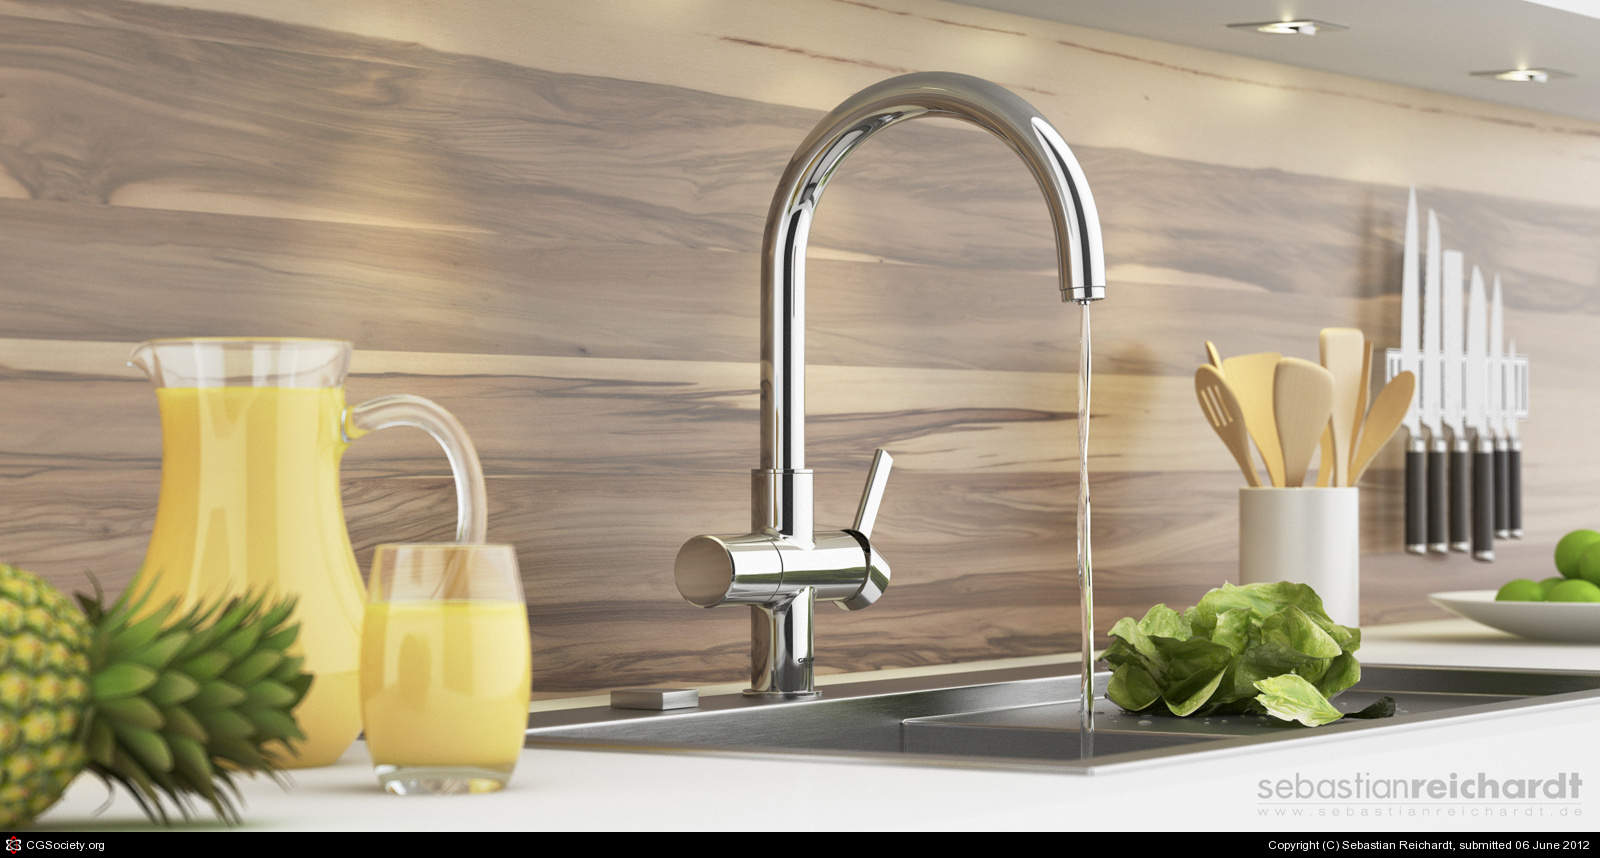 Choose Grohe Faucets For Your Faucet Ideas: Awesome Grohe Faucets In Silver With Sink For Kitchen Decor Ideas